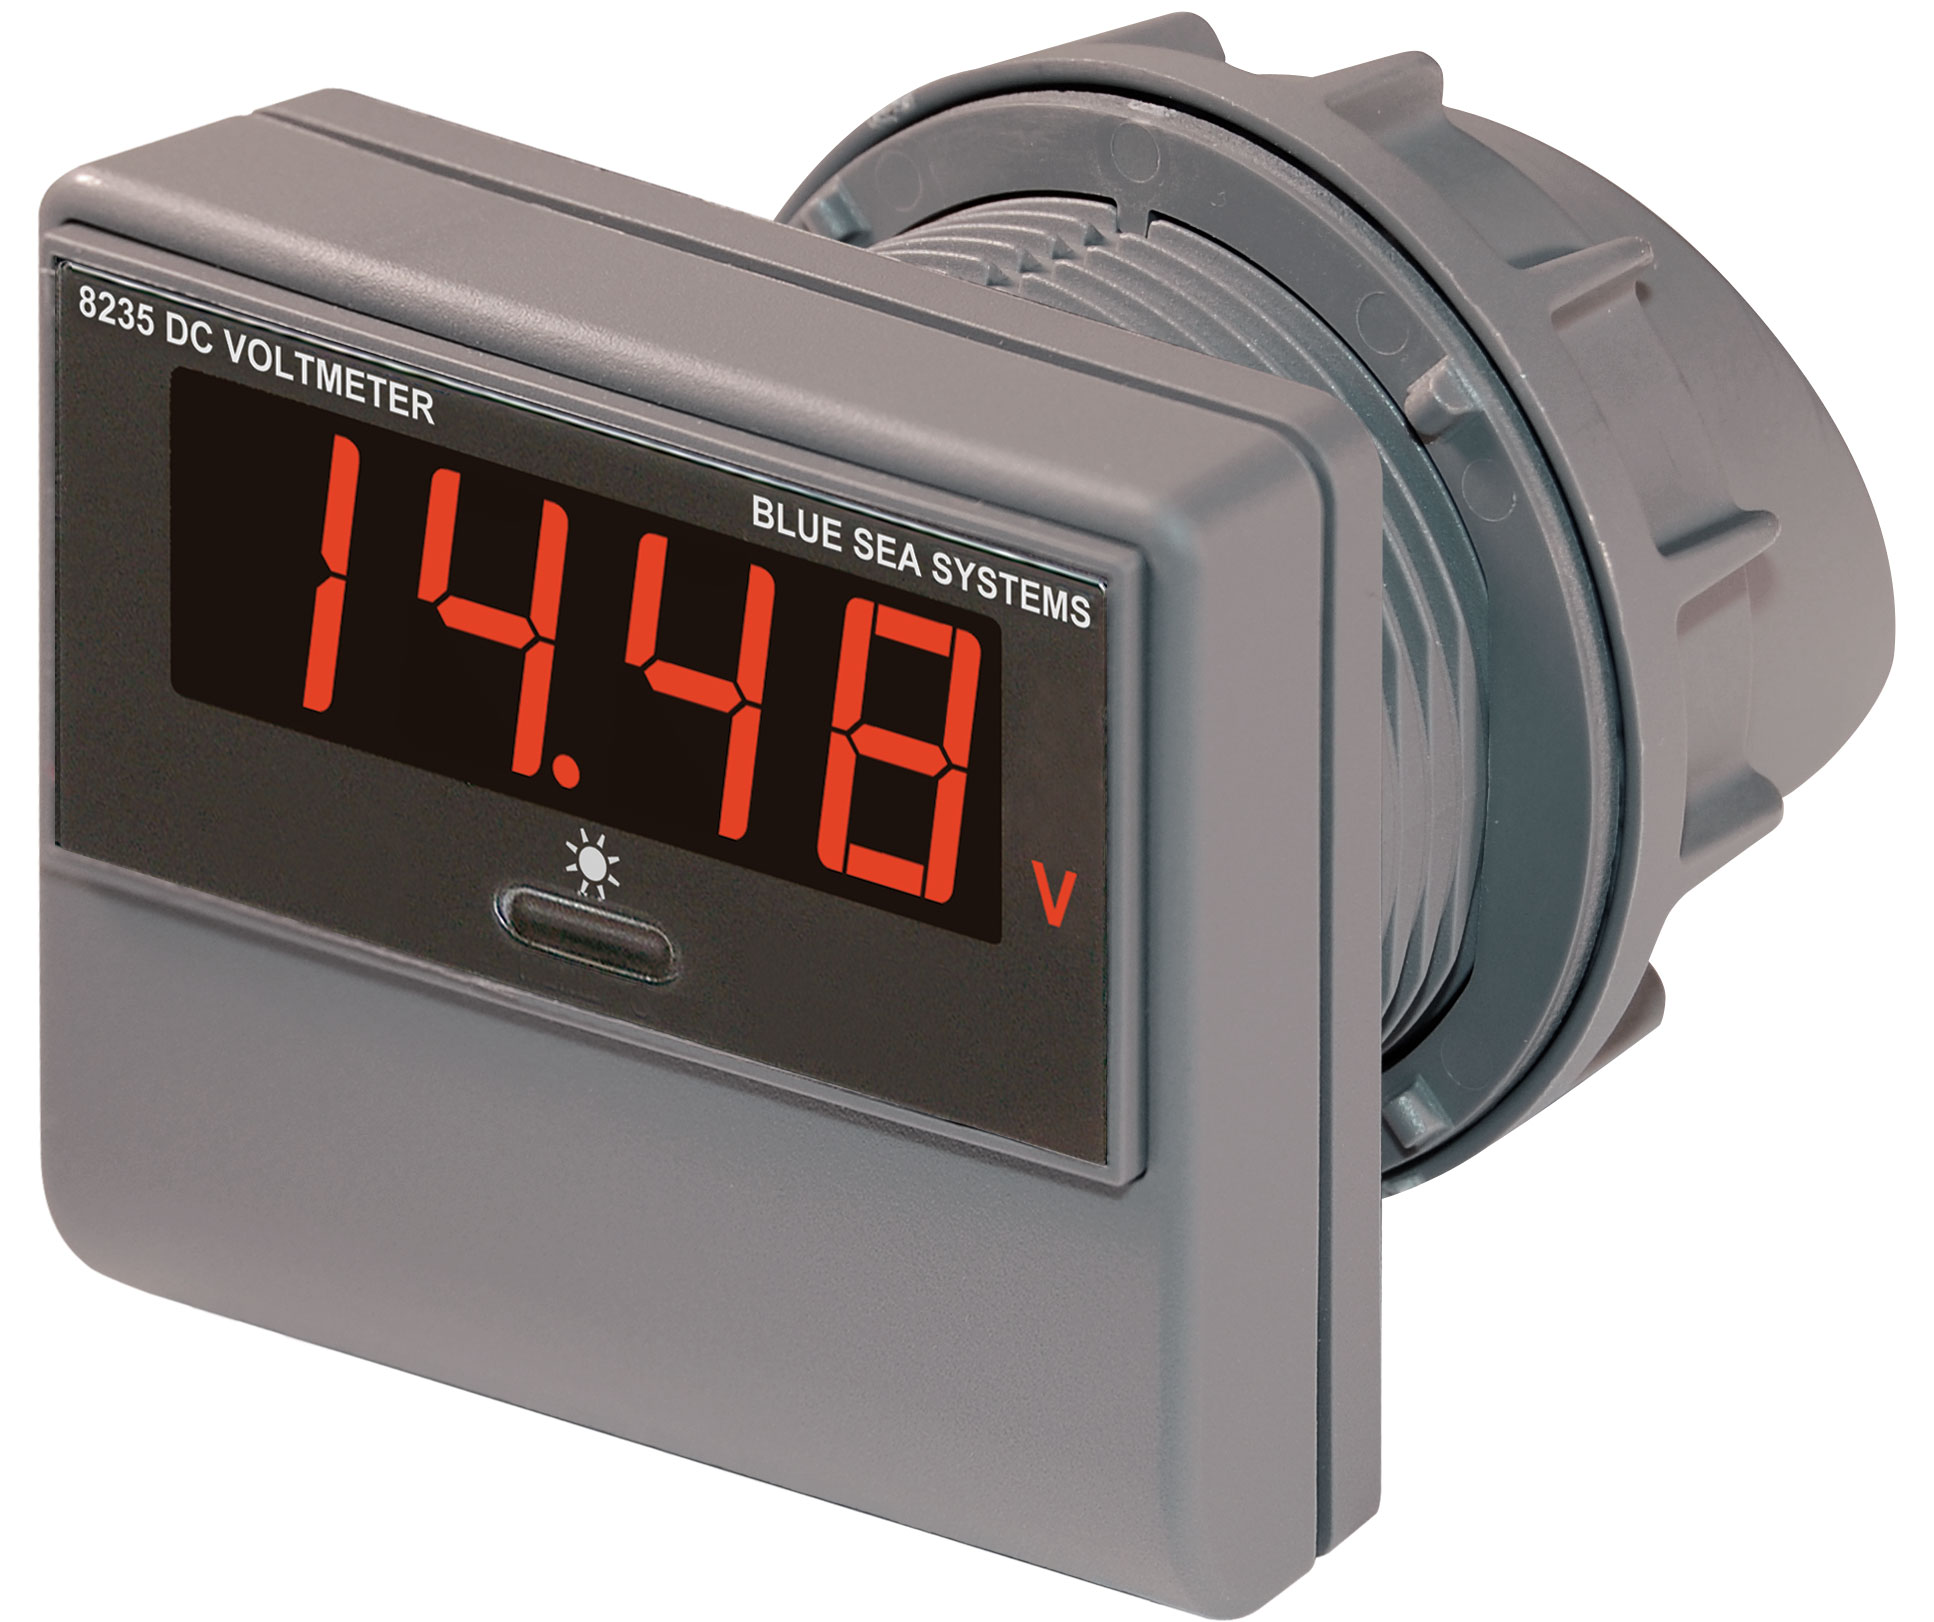 Dc Digital Voltmeter 0 To 60v Blue Sea Systems Circuit Product Image